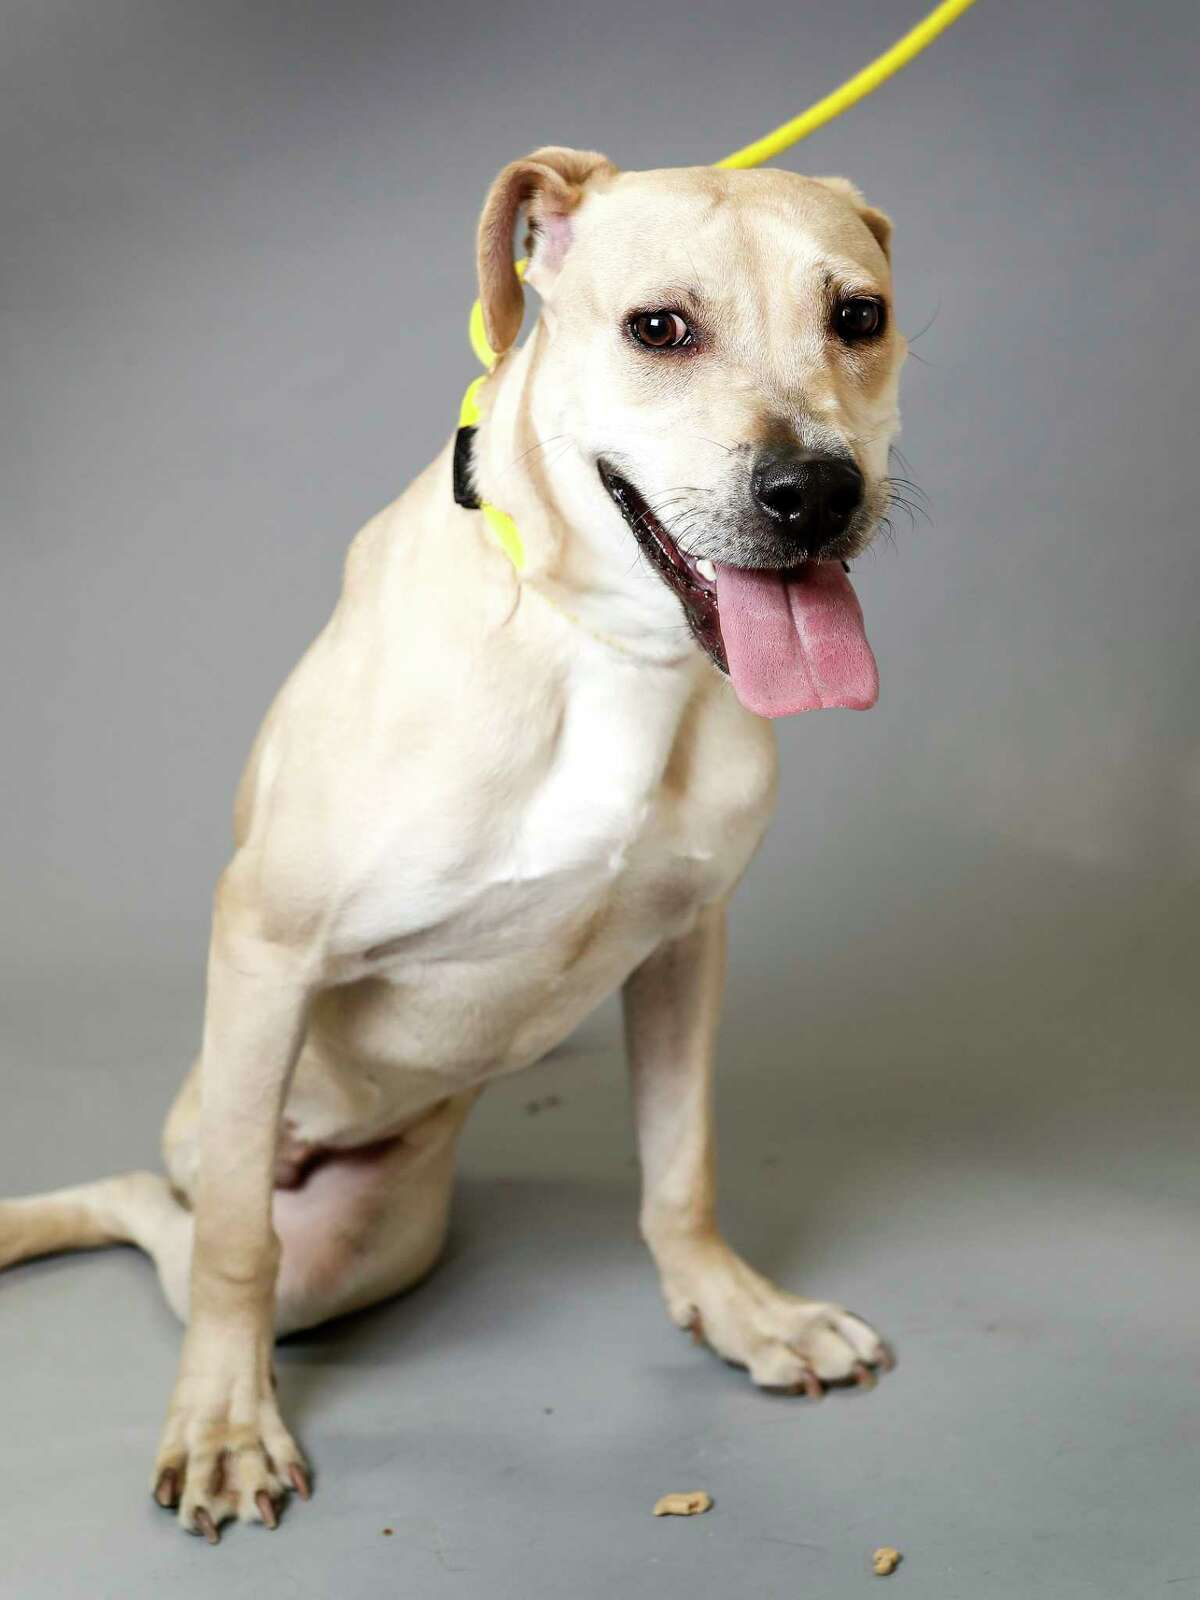 Rocky (ID: 41349485) is a 9-month-old, male, yellow Labrador retriever mix available for adoption from the Houston Humane Society. Photographed, Tuesday, Sept. 10, 2019, in Houston. Rocky was brought into the shelter as a stray in April, with a broken leg, that the vets had to amputate. He was adopted out, but returned because he did not get along with cats. He's a precious boy, who runs, jumps and plays without needing that back leg. His adoption fees have been waived, as he has a sponsor.